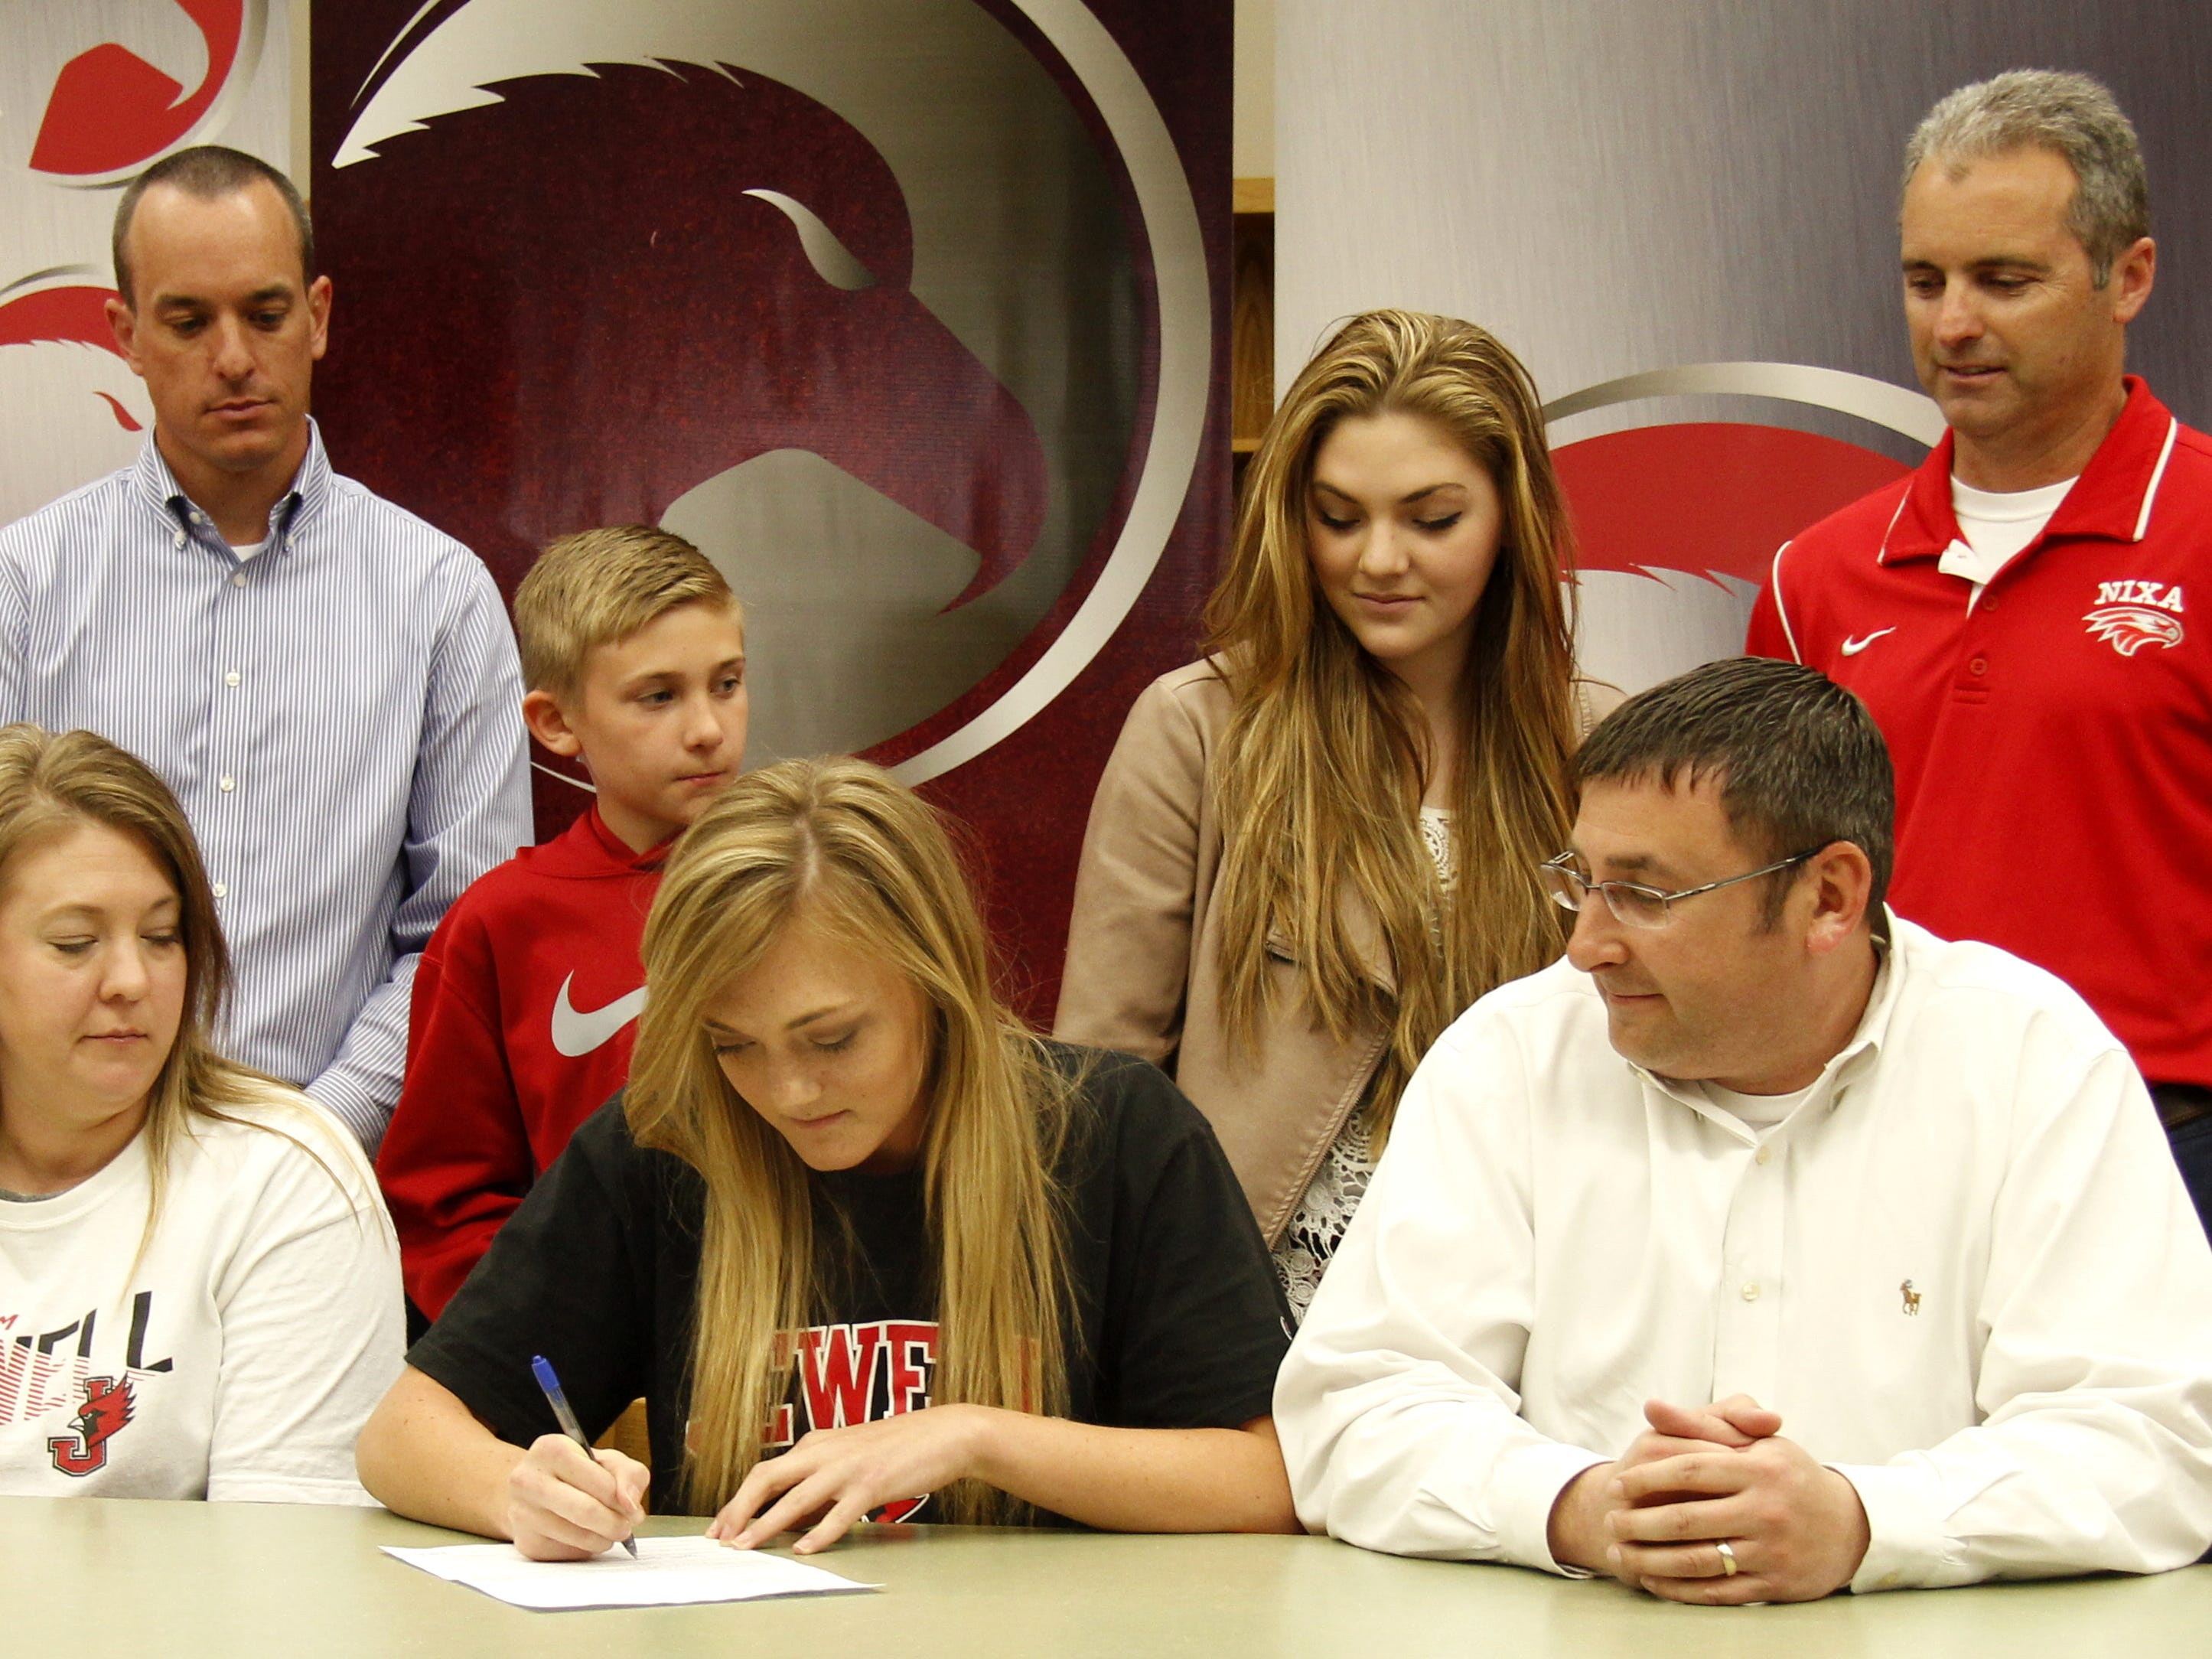 Nixa soccer player Alyson Galler (center), surrounded by her family and coaches, signs a letter of intent to play for William Jewell College next year during a ceremony Wednesday at Nixa High School.